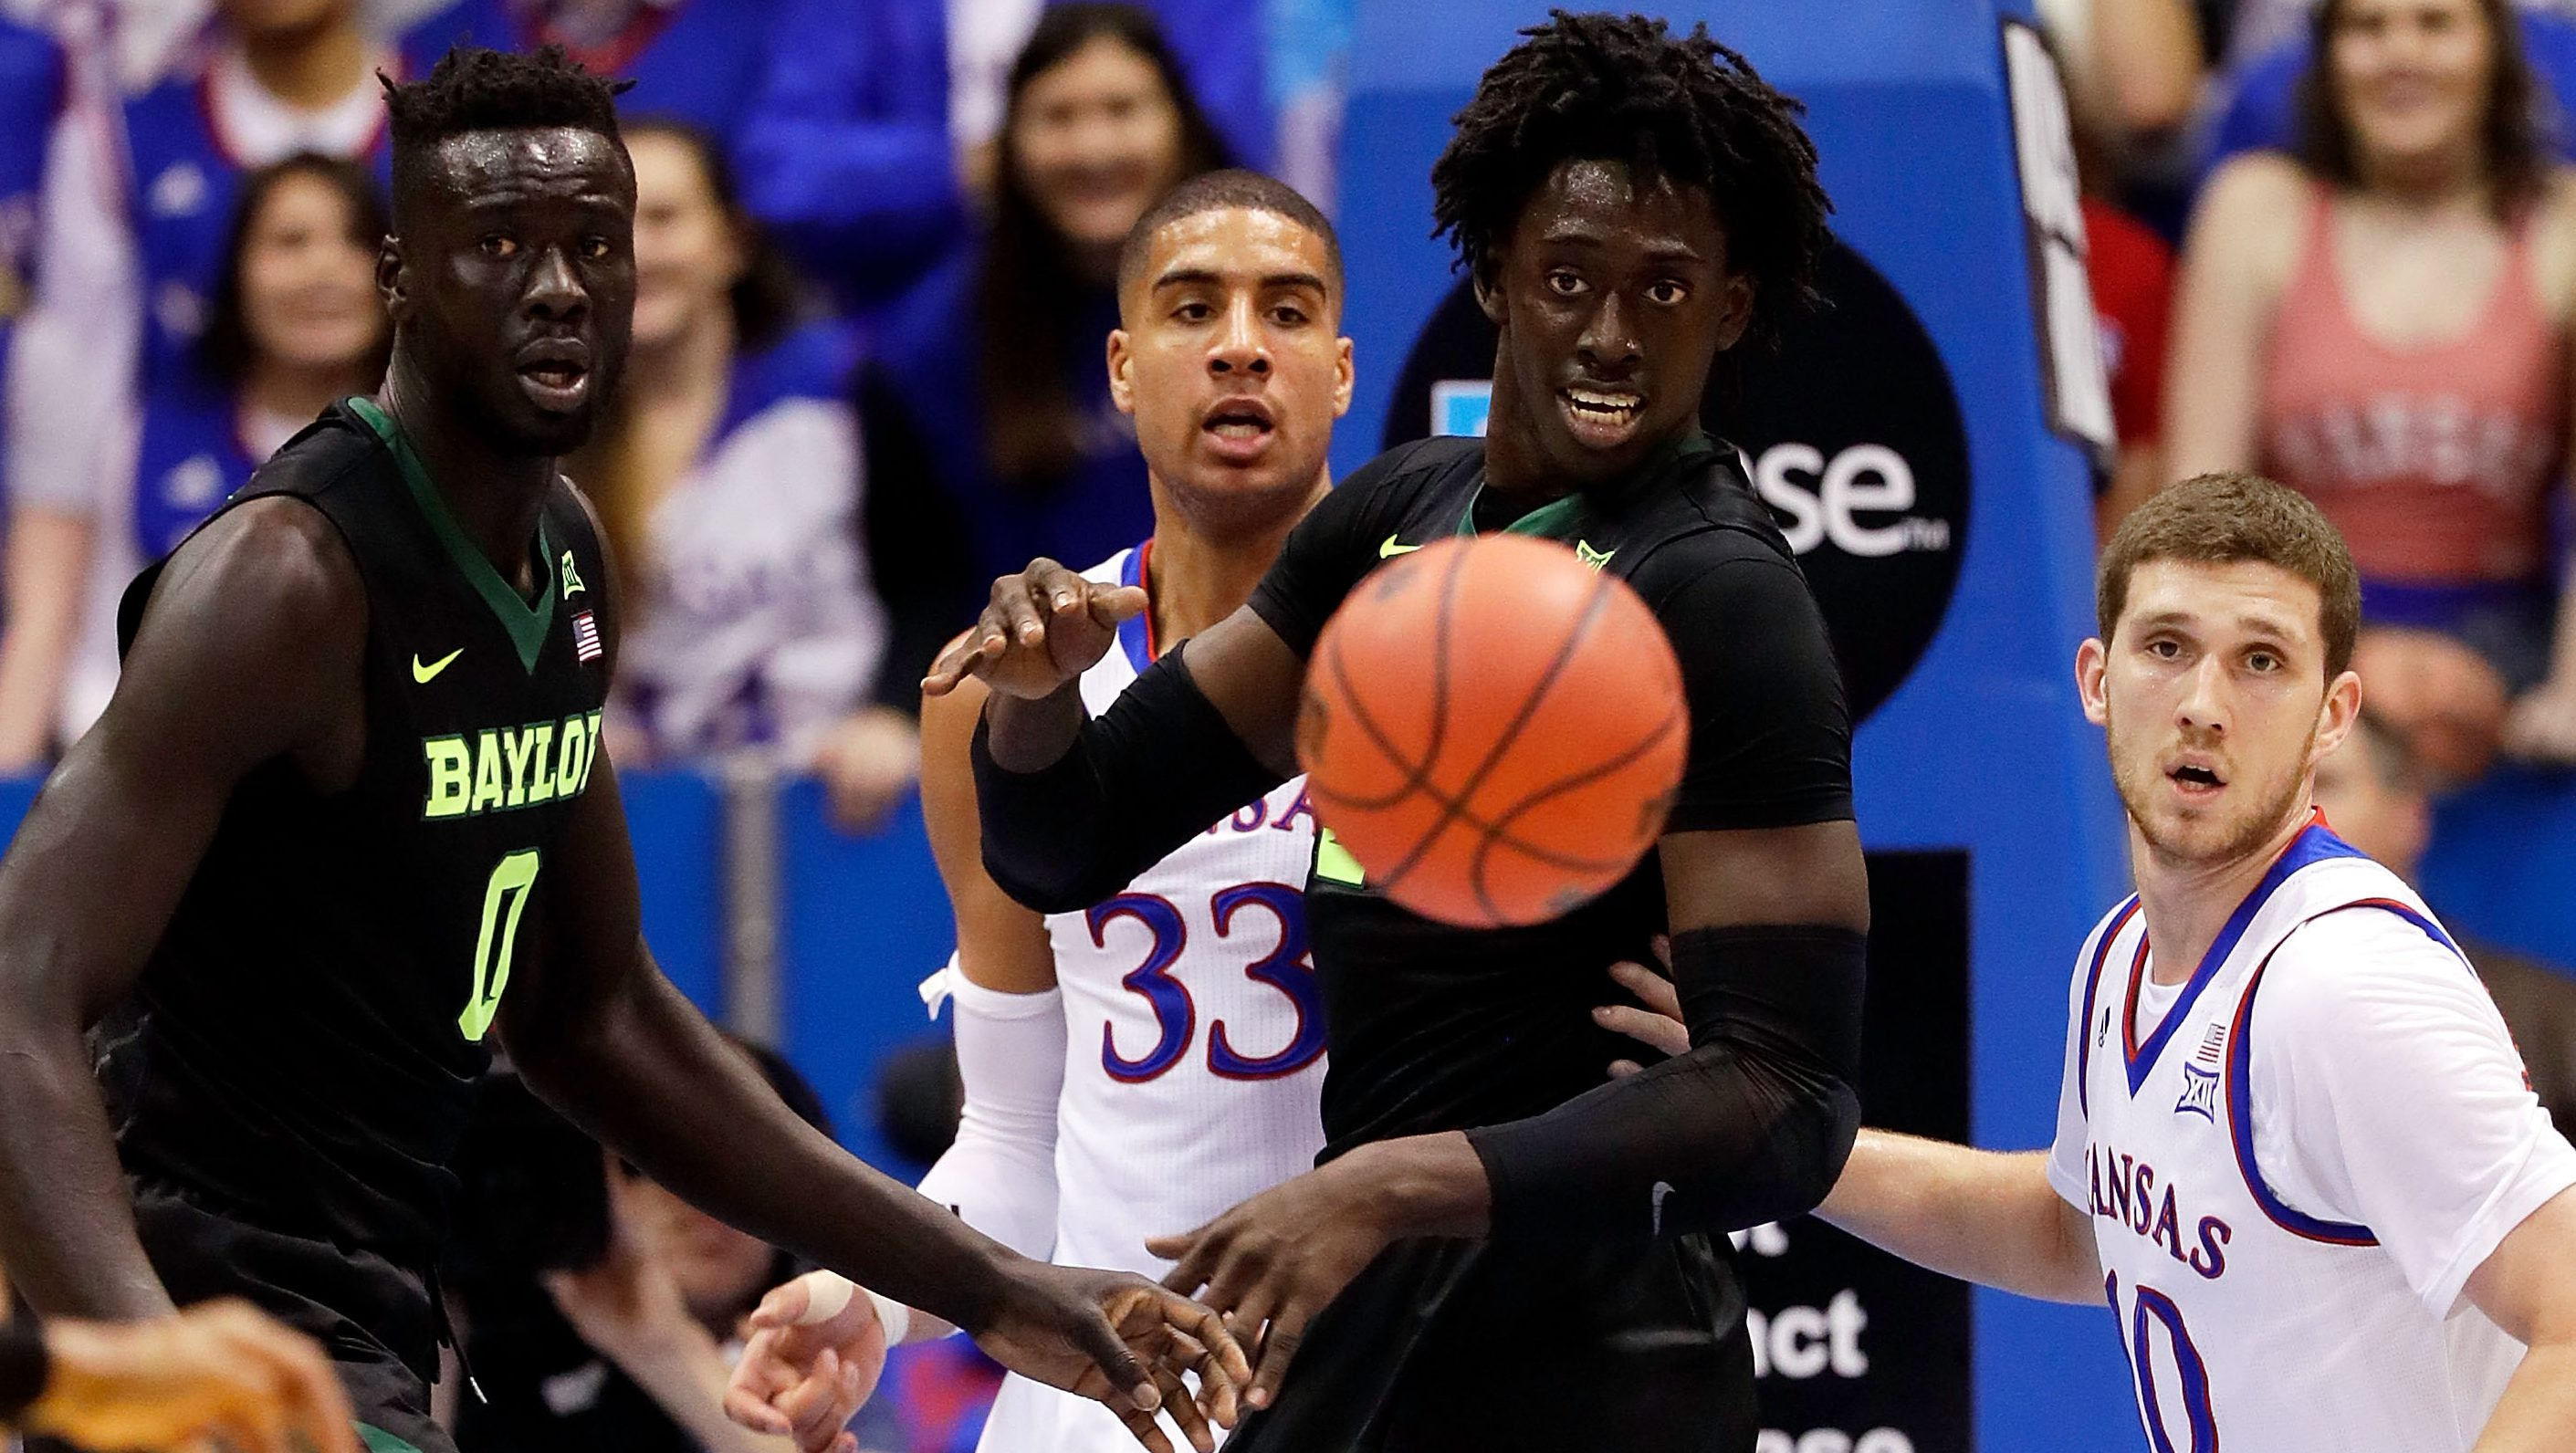 LAWRENCE, KS - FEBRUARY 01: Jo Lual-Acuil Jr. #0 and Johnathan Motley #5 of the Baylor Bears watch a loose ball during the game against the Kansas Jayhawks at Allen Fieldhouse on February 1, 2017 in Lawrence, Kansas. (Photo by Jamie Squire/Getty Images)